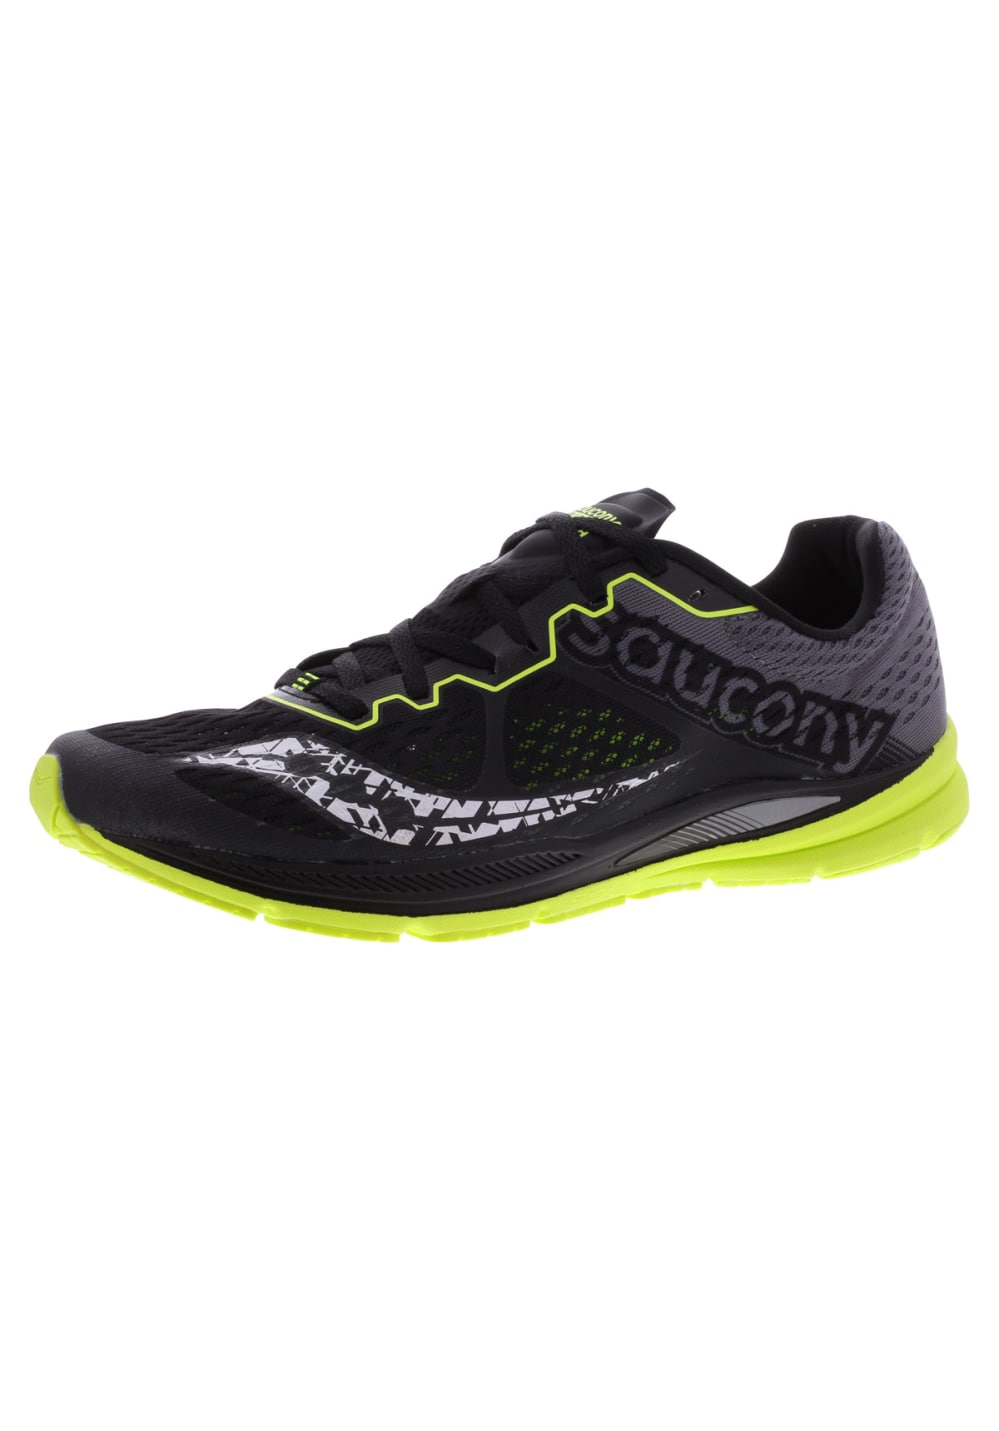 huge discount e48c6 1bddf Saucony Fastwitch - Running shoes for Men - Black